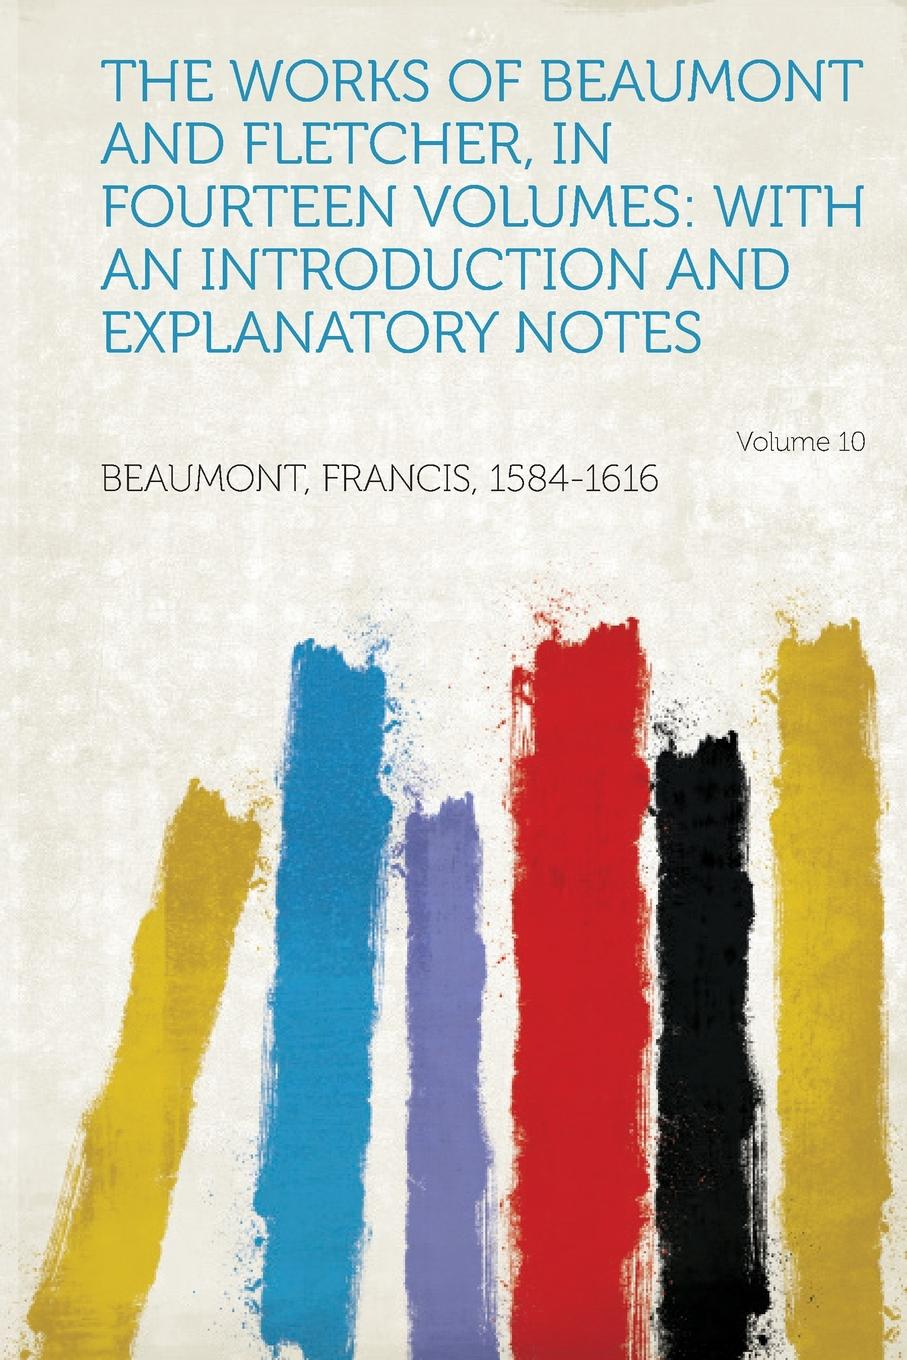 Francis Beaumont The Works of Beaumont and Fletcher, in Fourteen Volumes. With an Introduction and Explanatory Notes Volume 10 francis beaumont the works of beaumont and fletcher in fourteen volumes with an introduction and explanatory notes volume 2